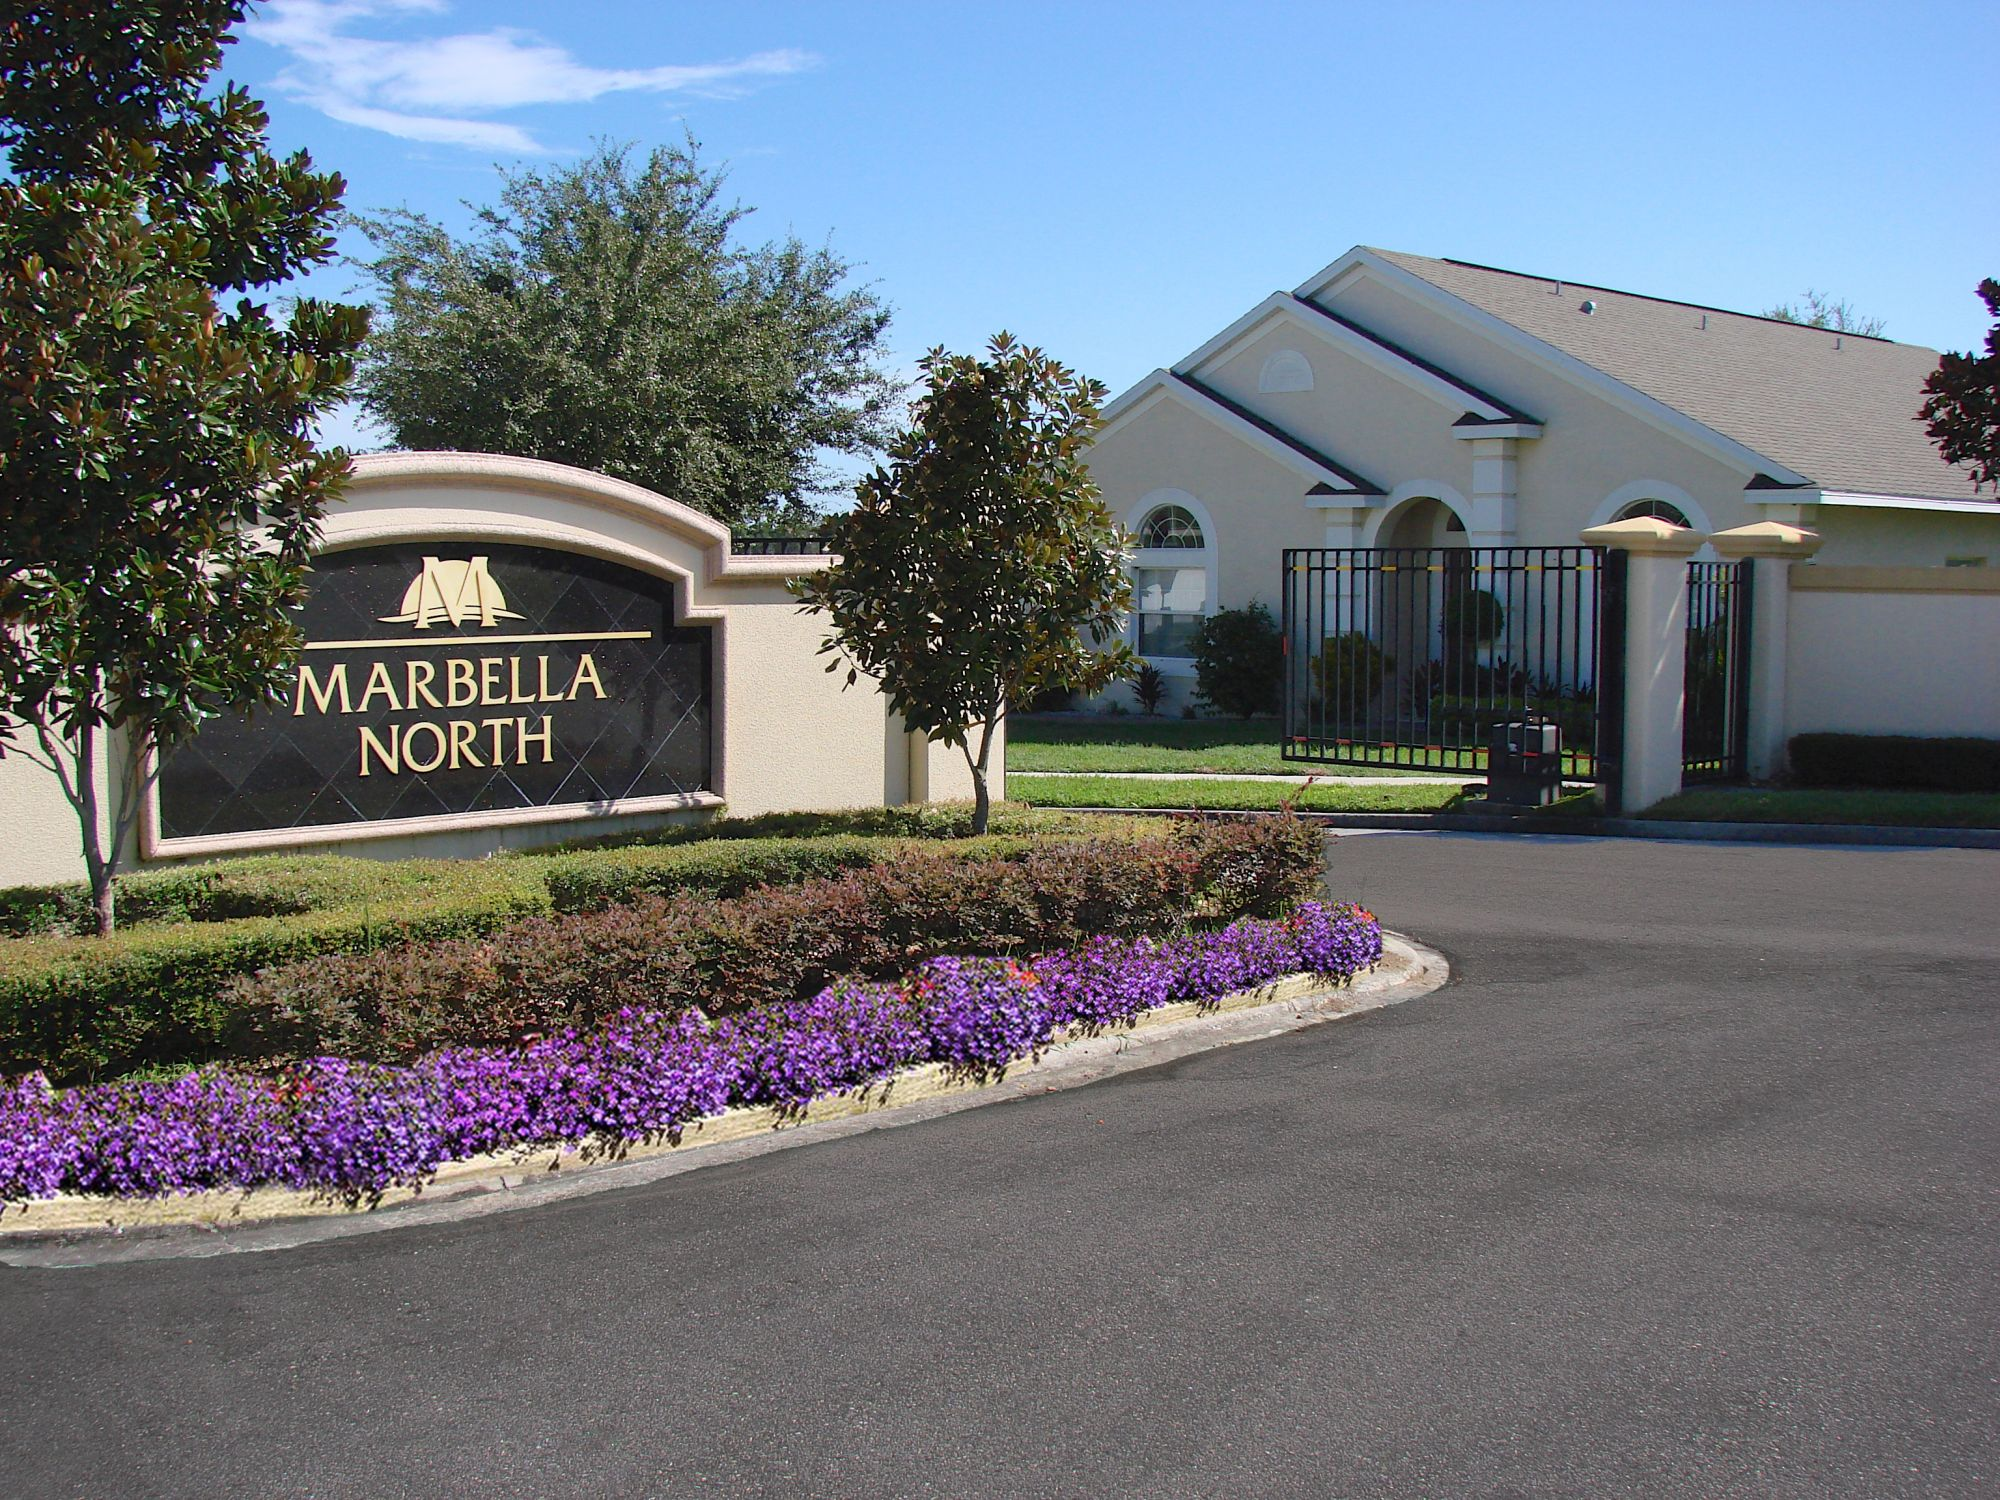 Marbella North Entrance Marbella Resort  Davenport, Florida